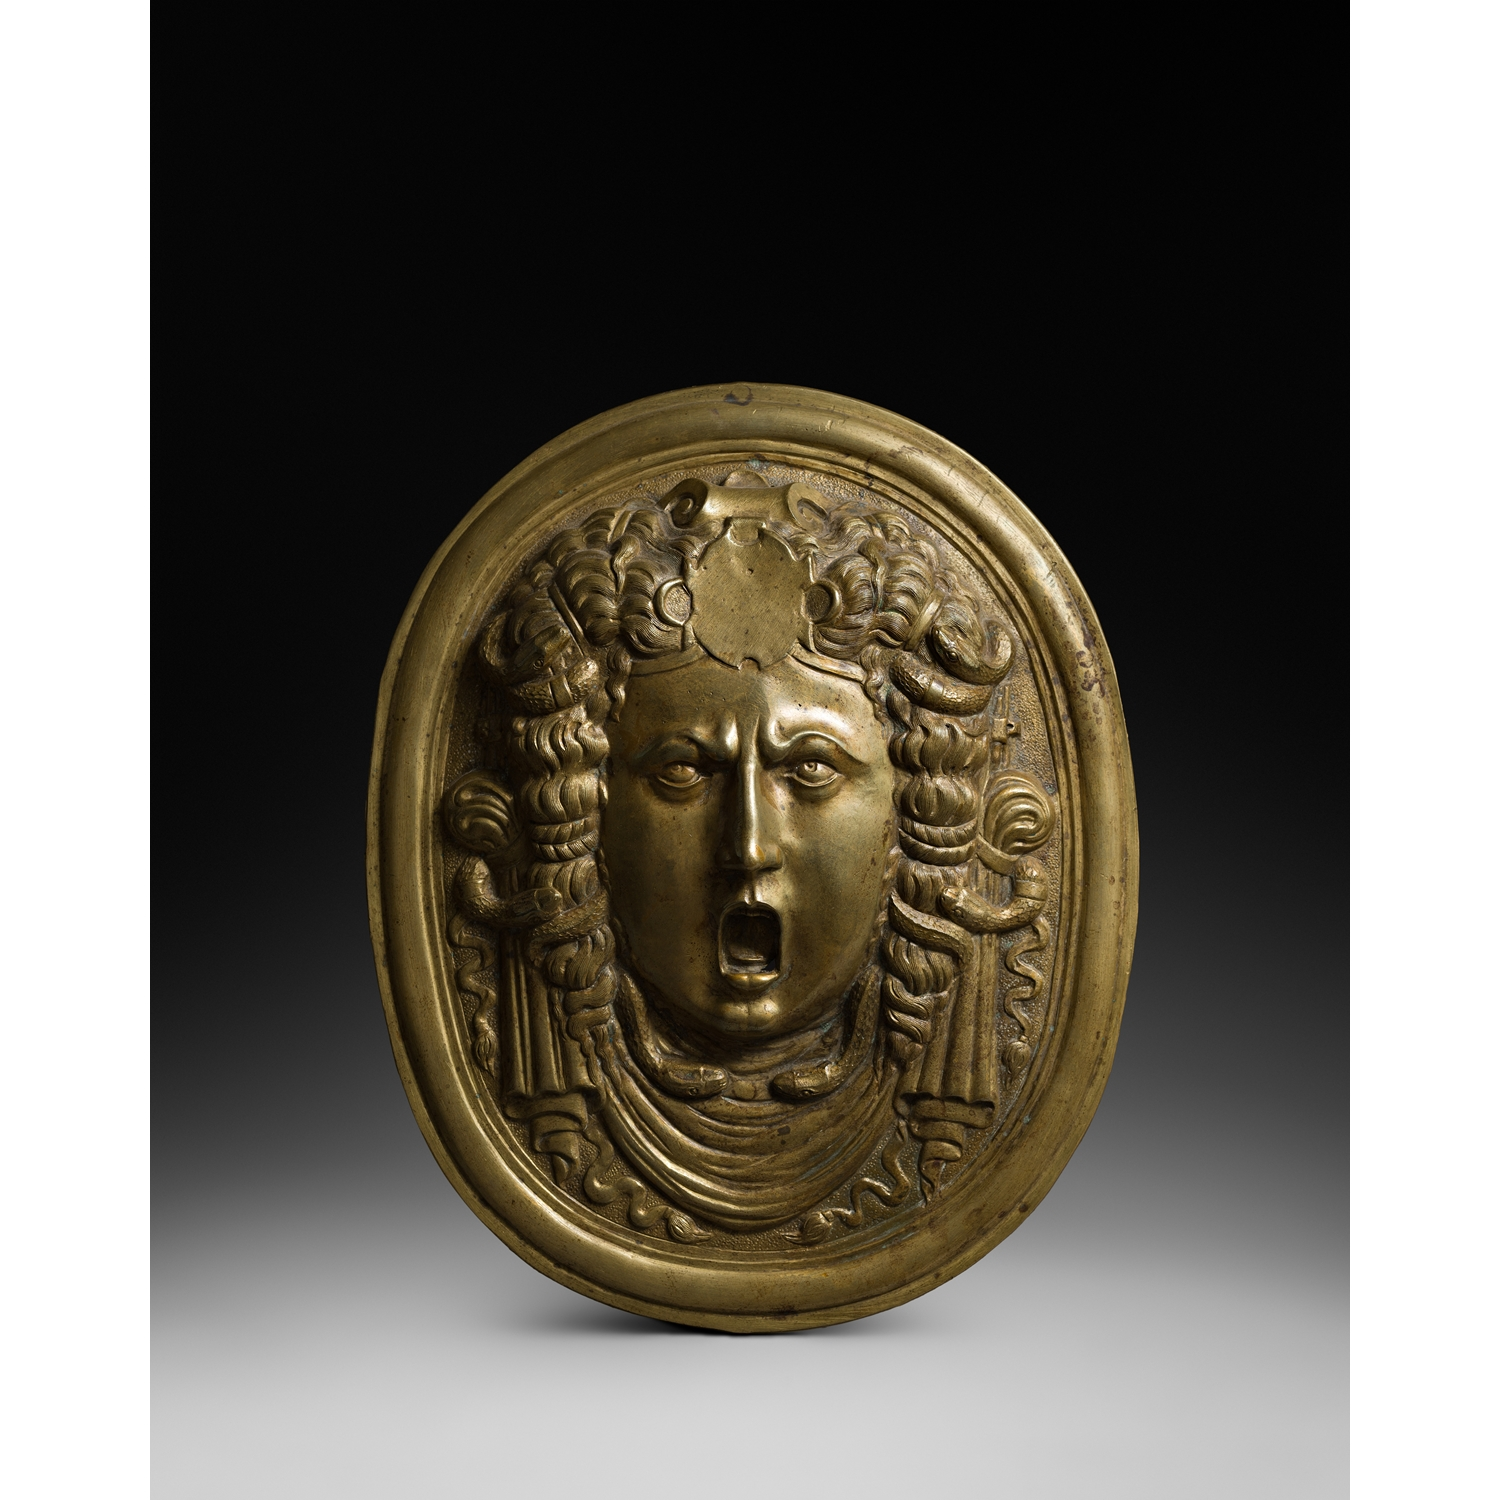 PLAQUE WITH MEDUSA FROM A PARADE SHIELD MILAN  SECOND HALF OF THE 16TH CENTURY